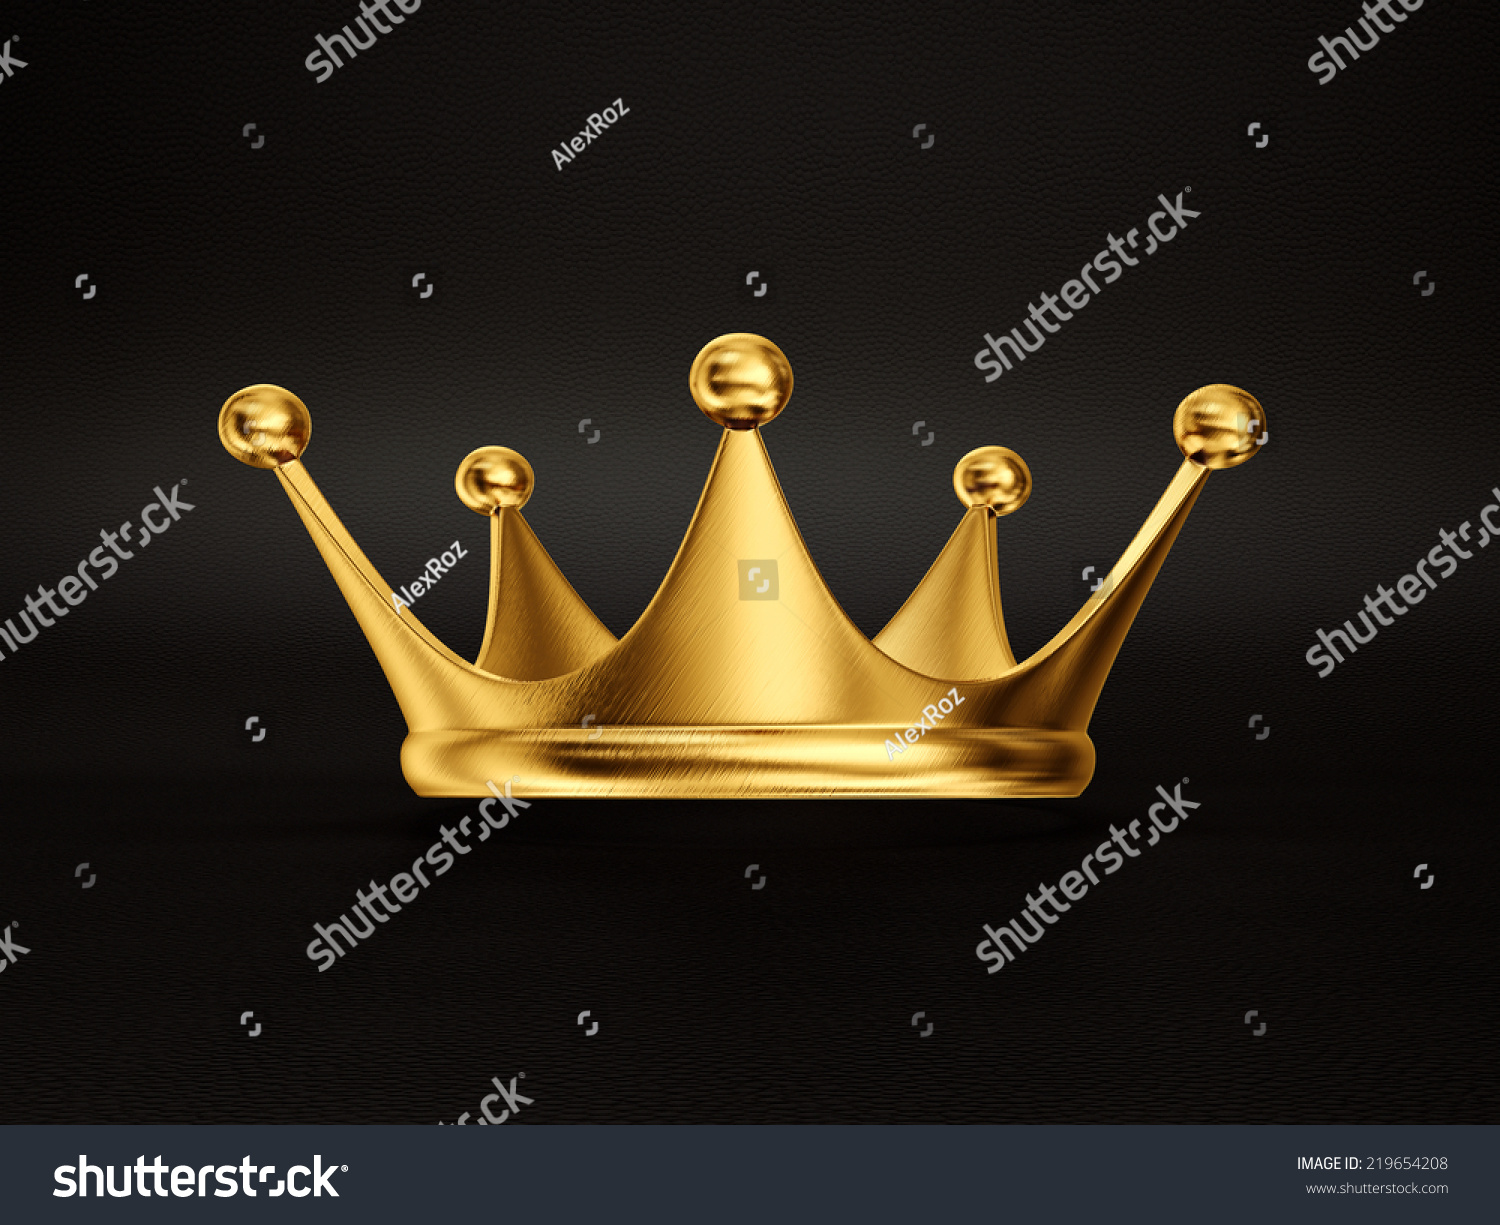 Gold crown background - photo#20